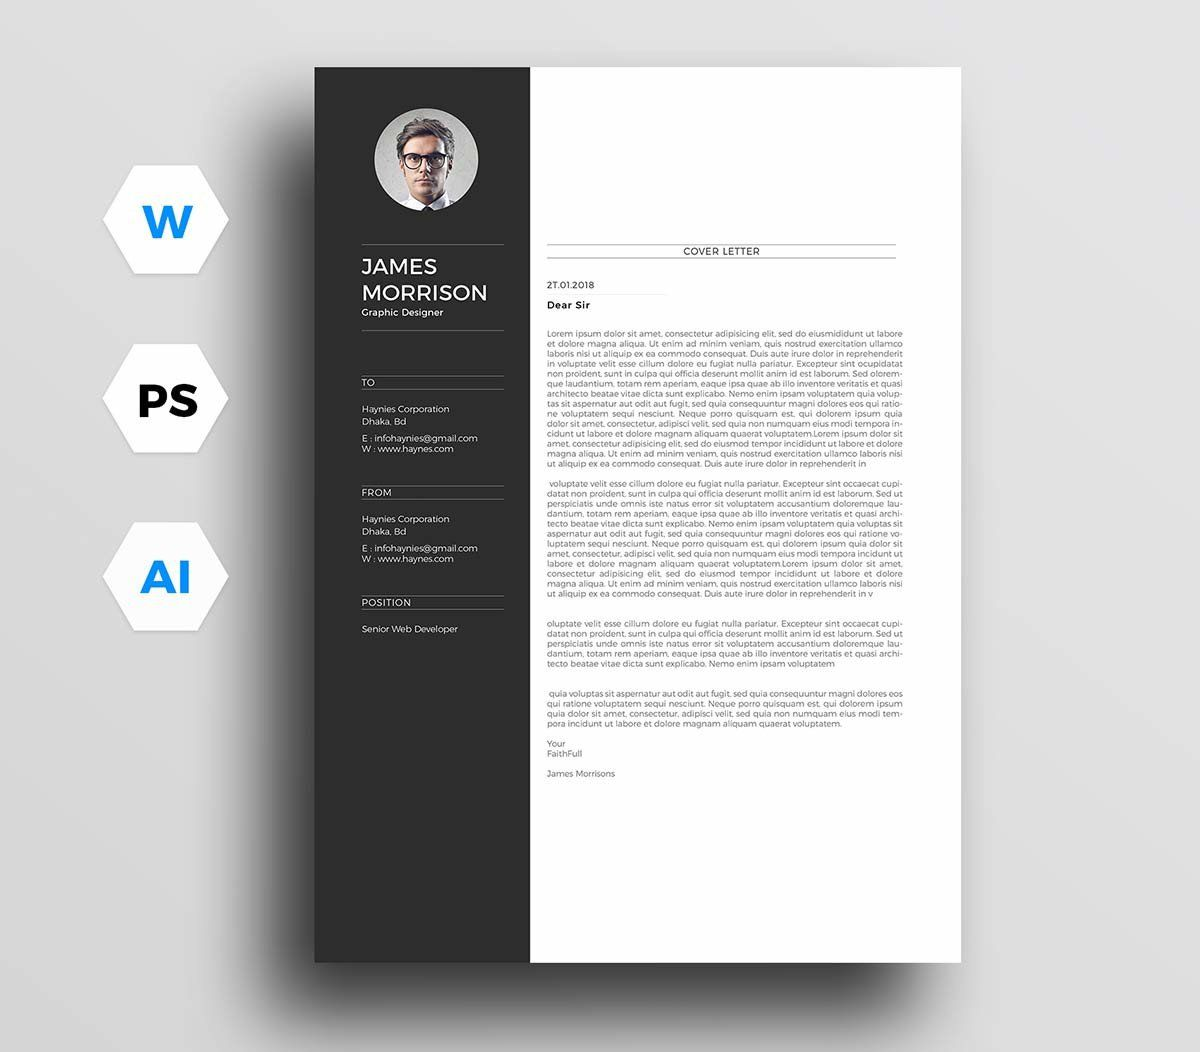 002 Best Free Download Cv Cover Letter Template Image  TemplatesFull